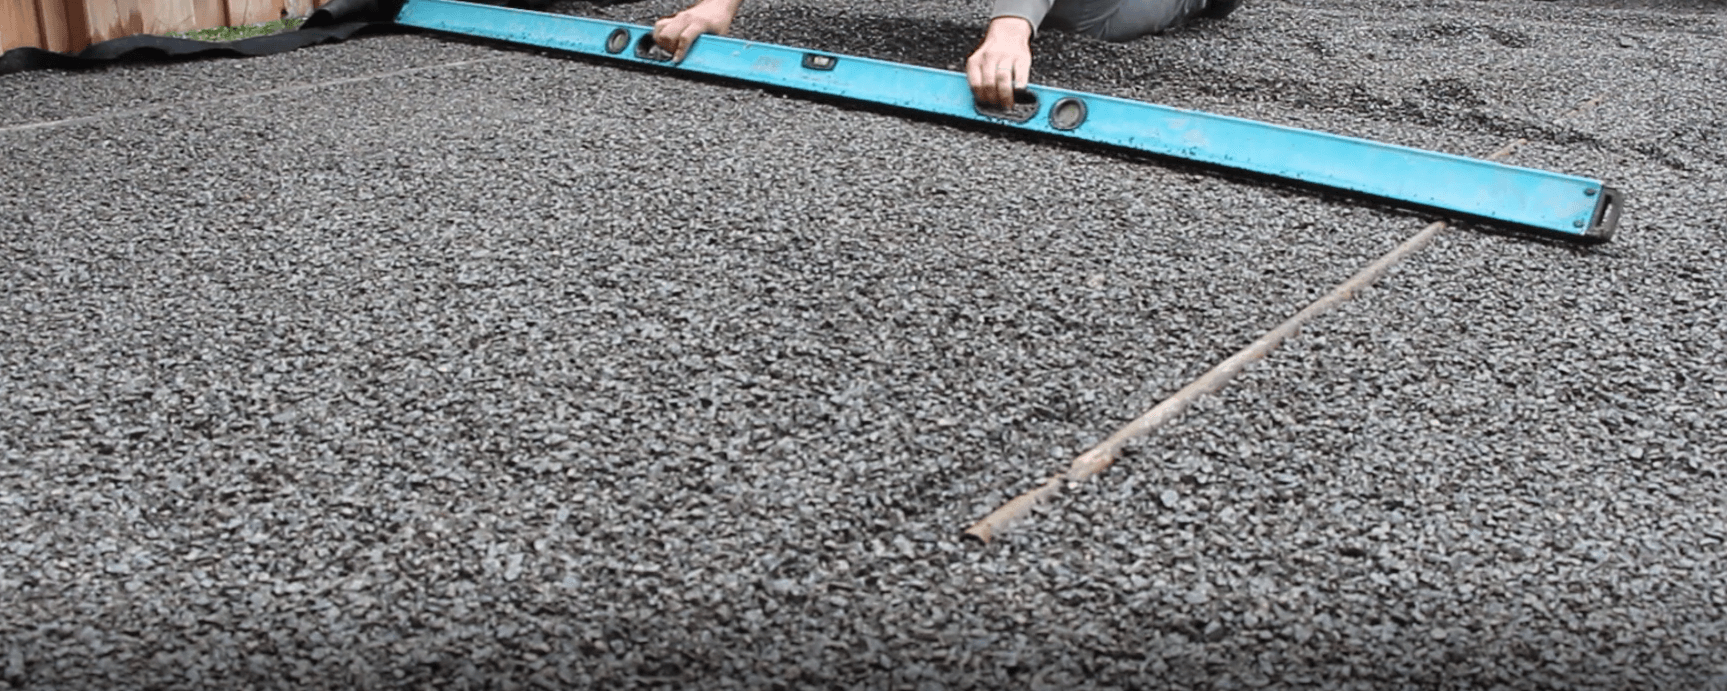 screed-layer-level